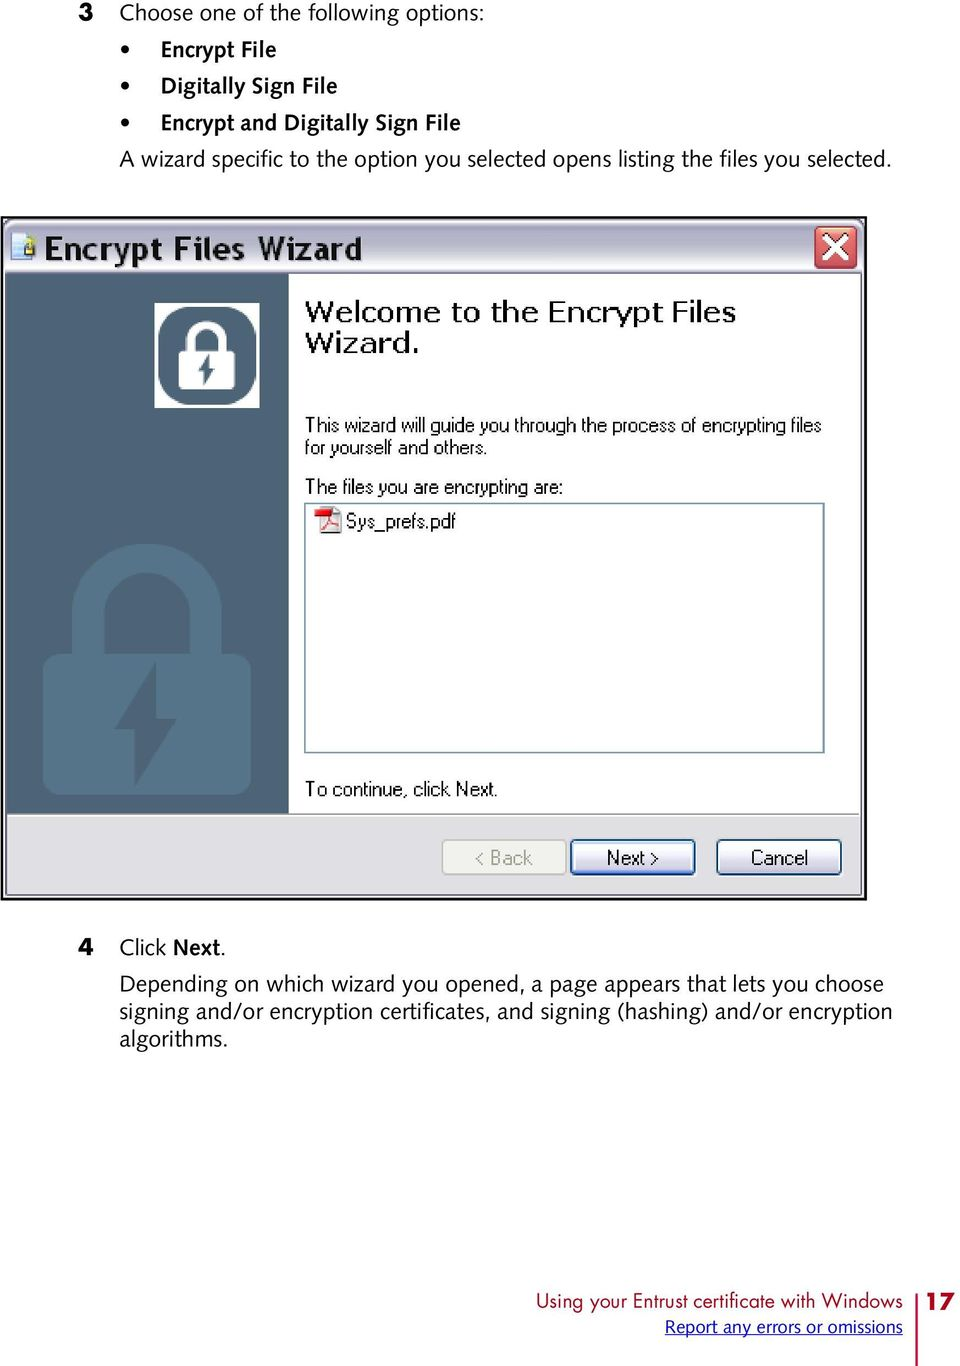 Depending on which wizard you opened, a page appears that lets you choose signing and/or encryption